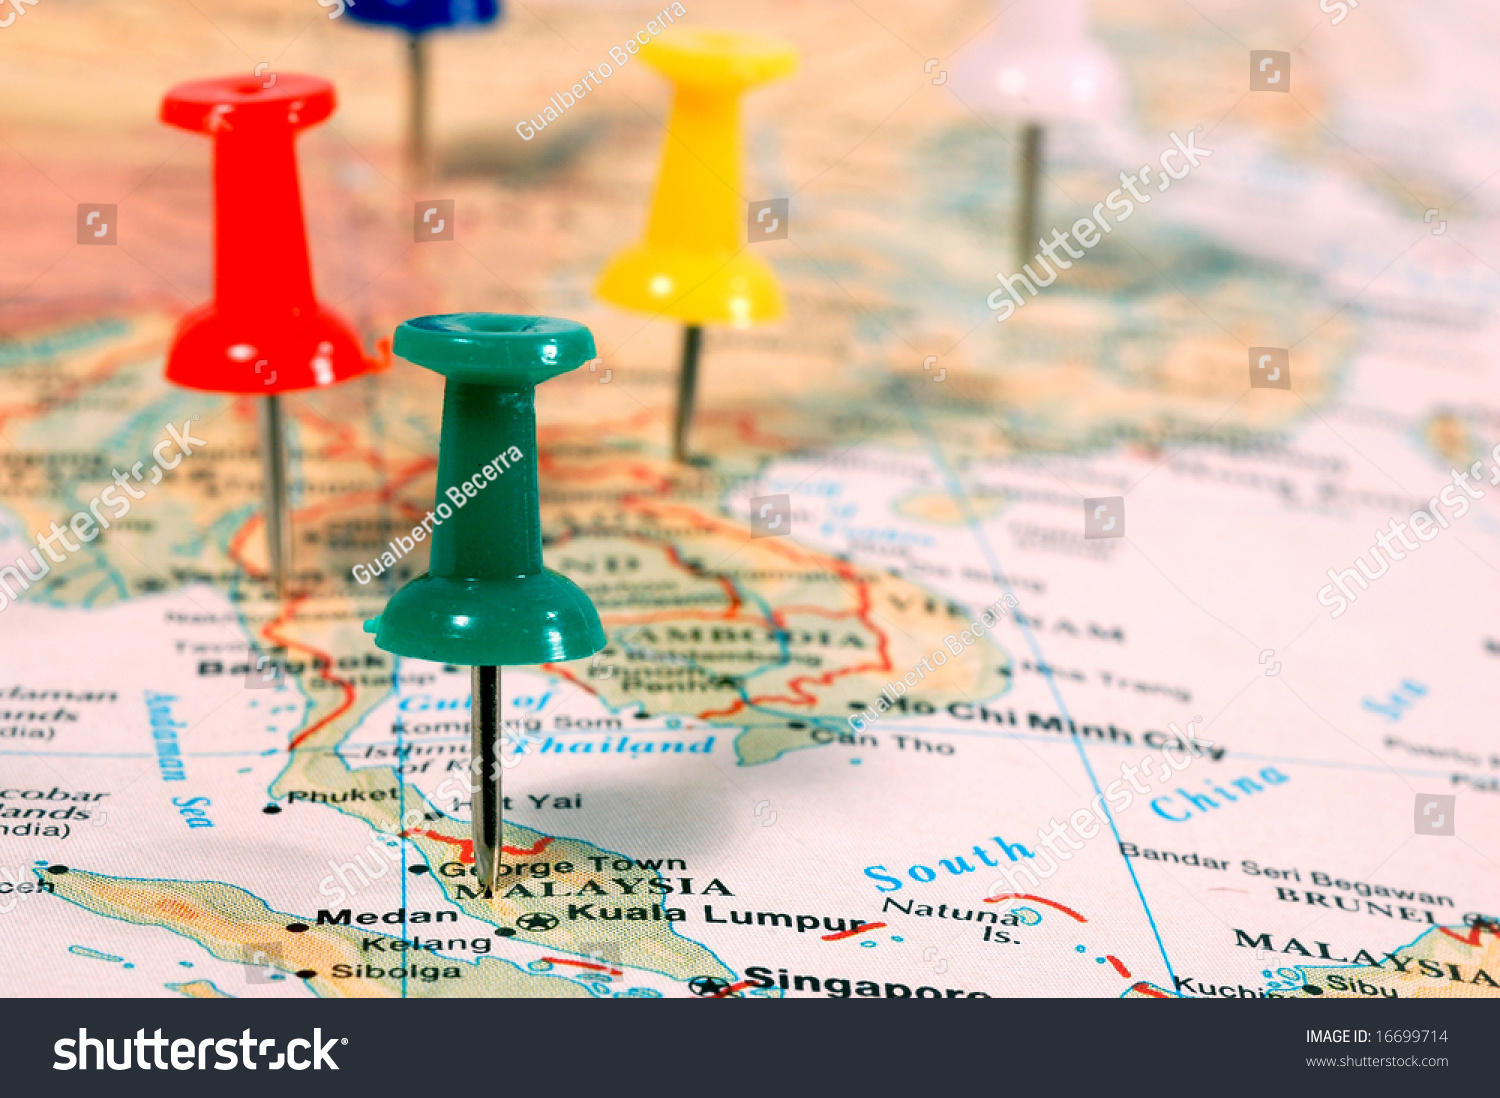 Map South East Asia Pins Showing Photo 16699714 Shutterstock – East Asia and Southeast Asia Map